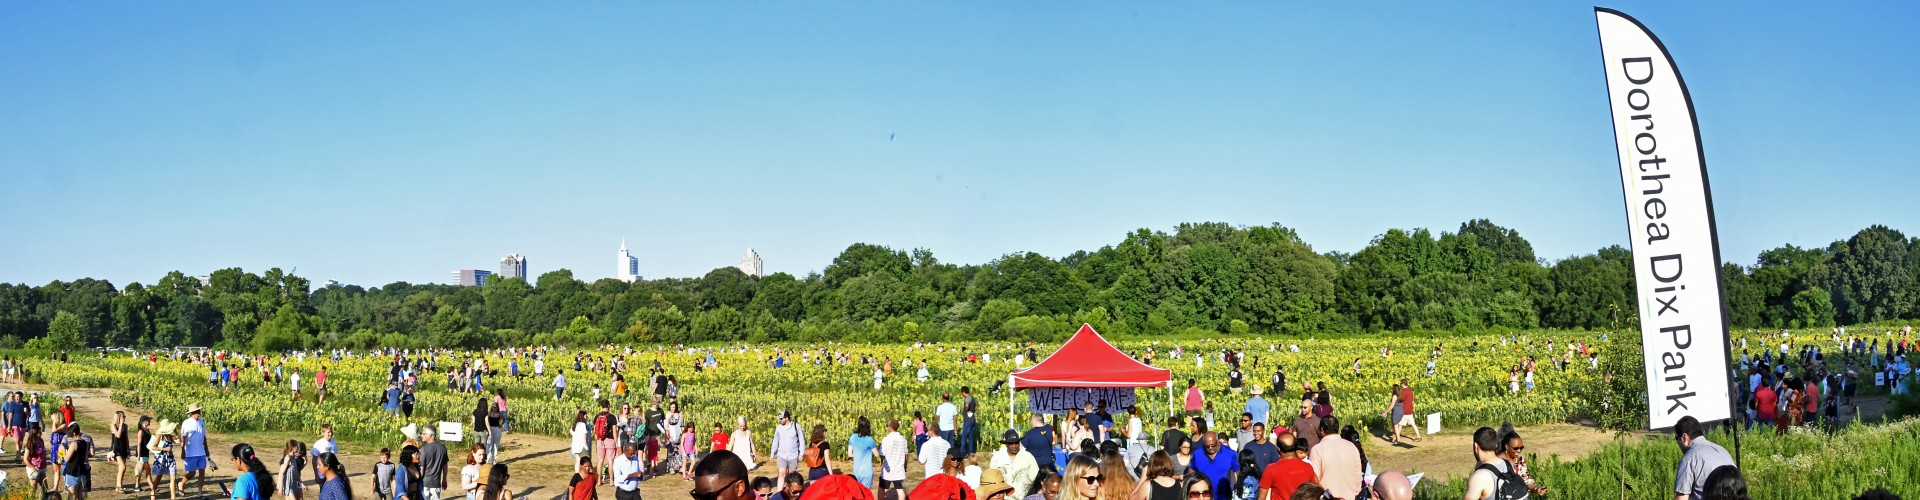 sunflower field at Dix Park full of people with downtown Raleigh skyline